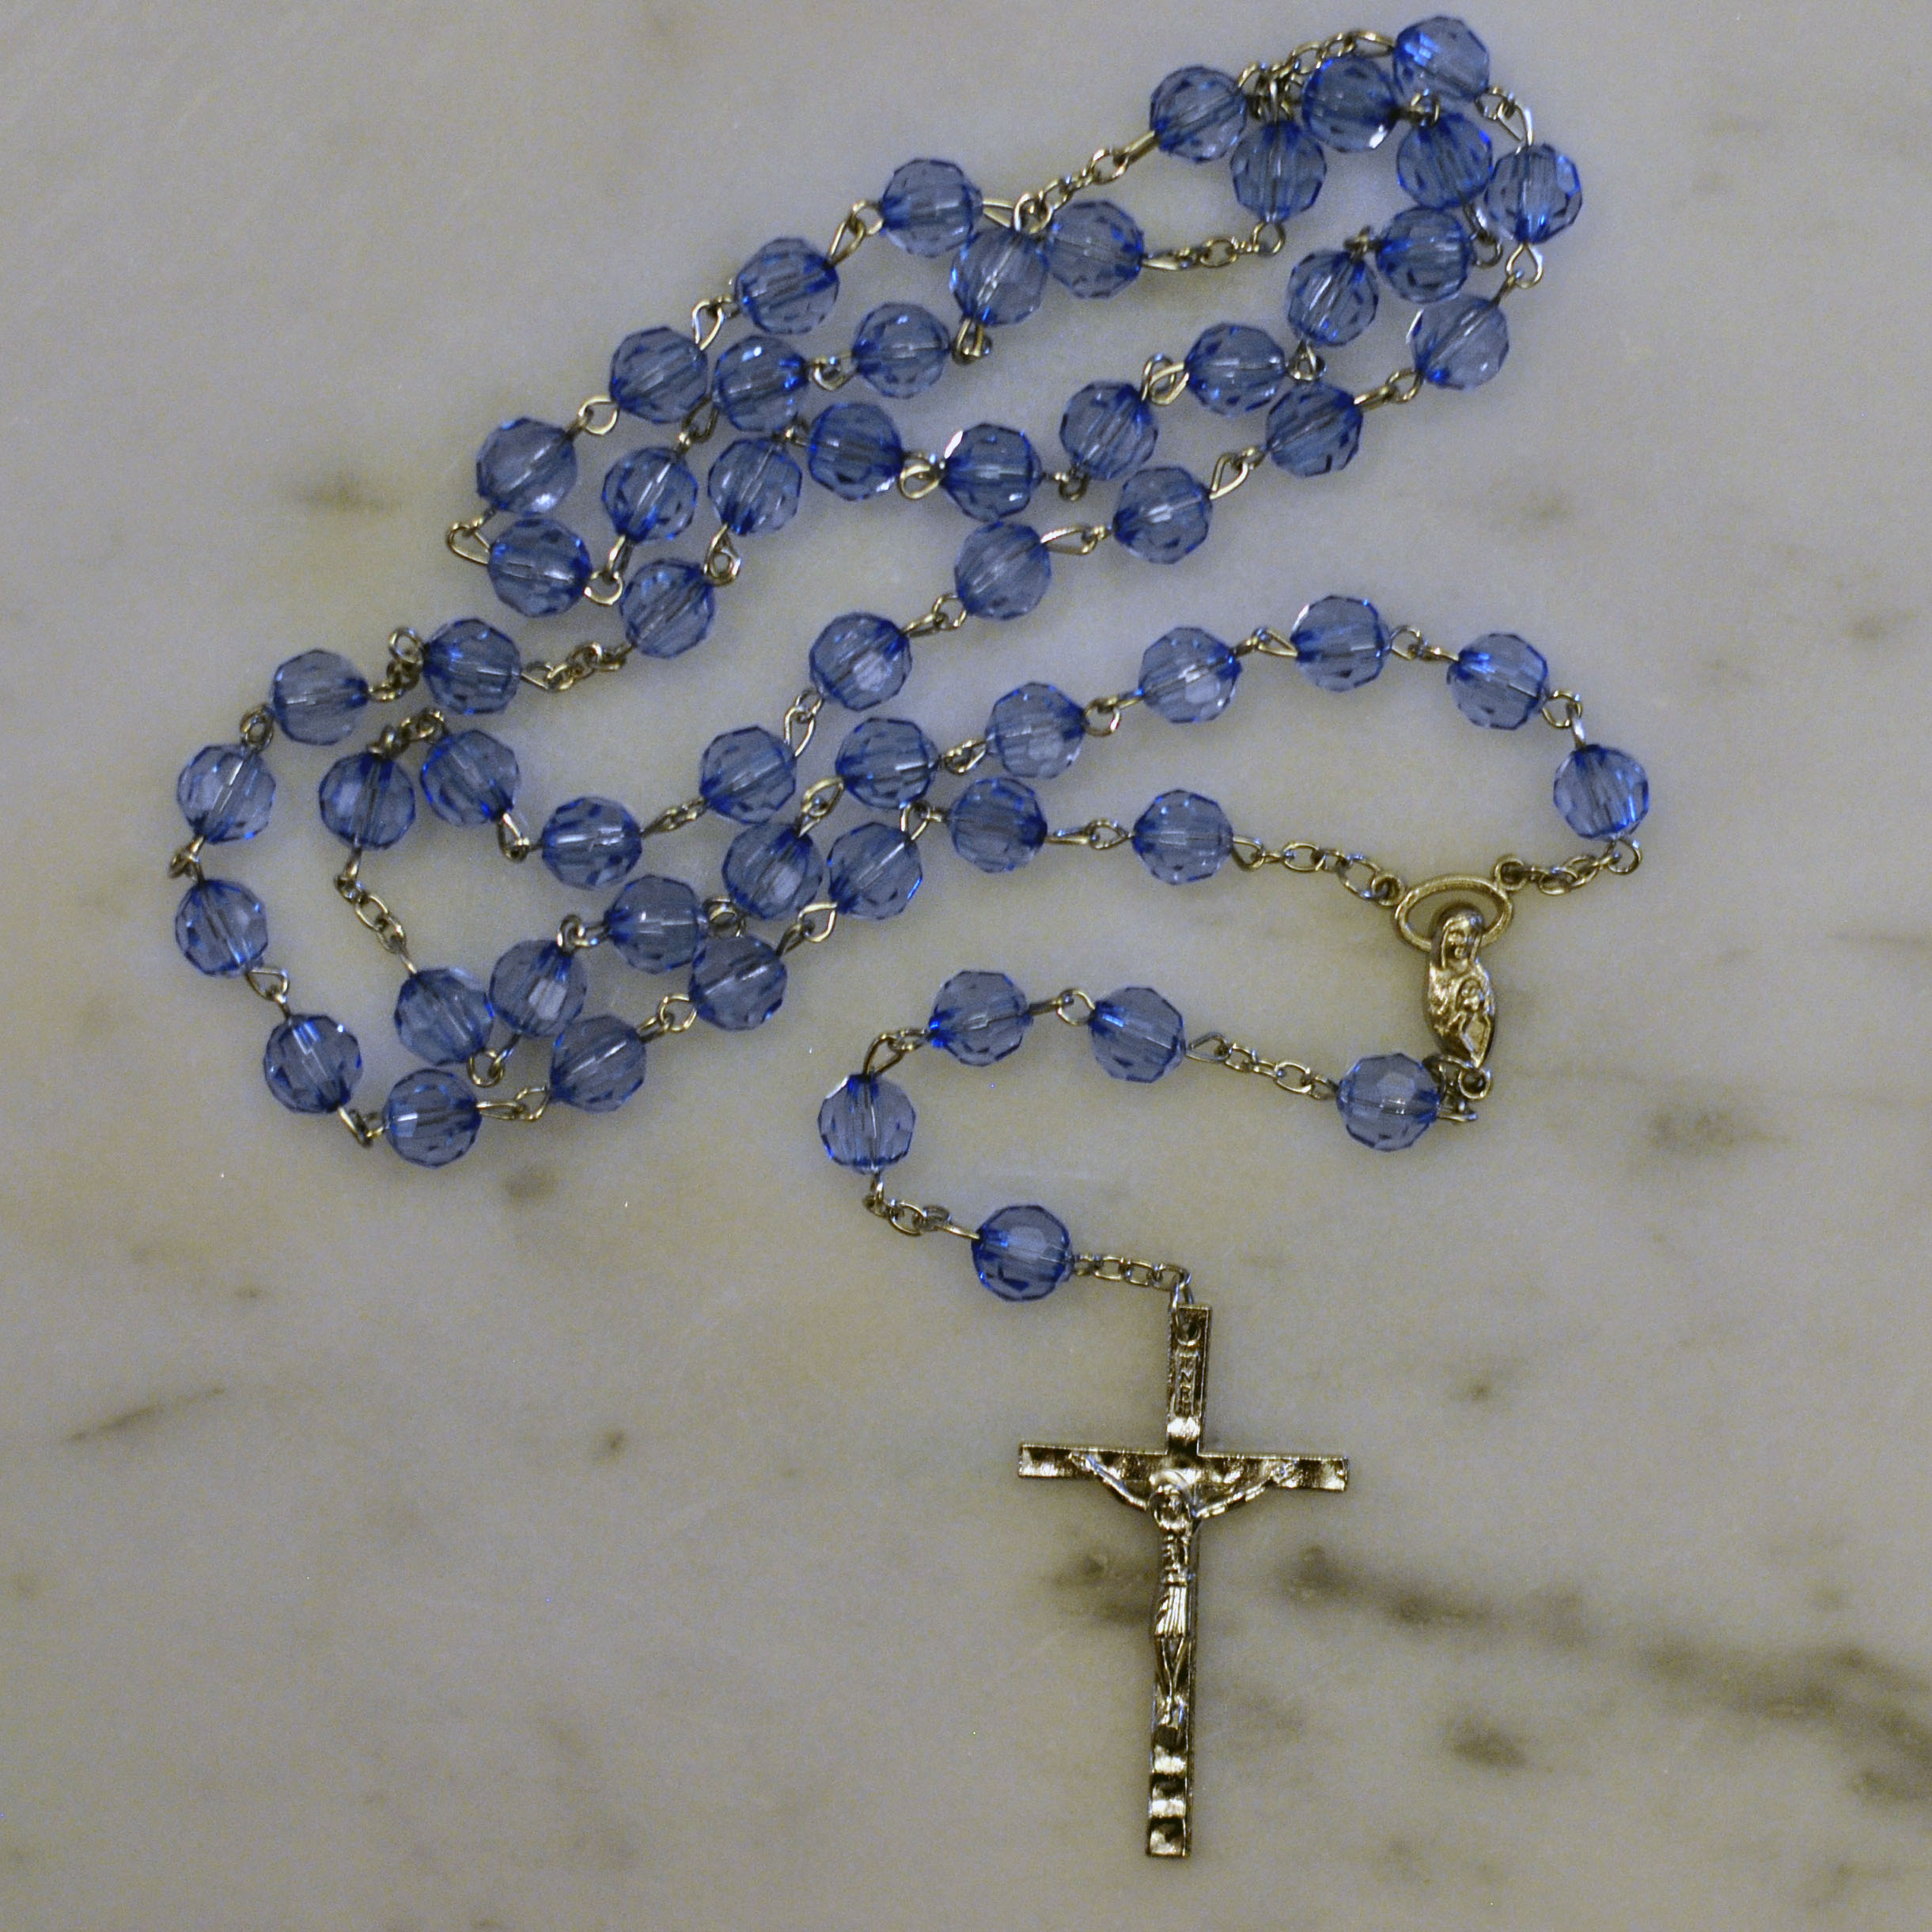 Rosary Form – Our Lady of Angels Association